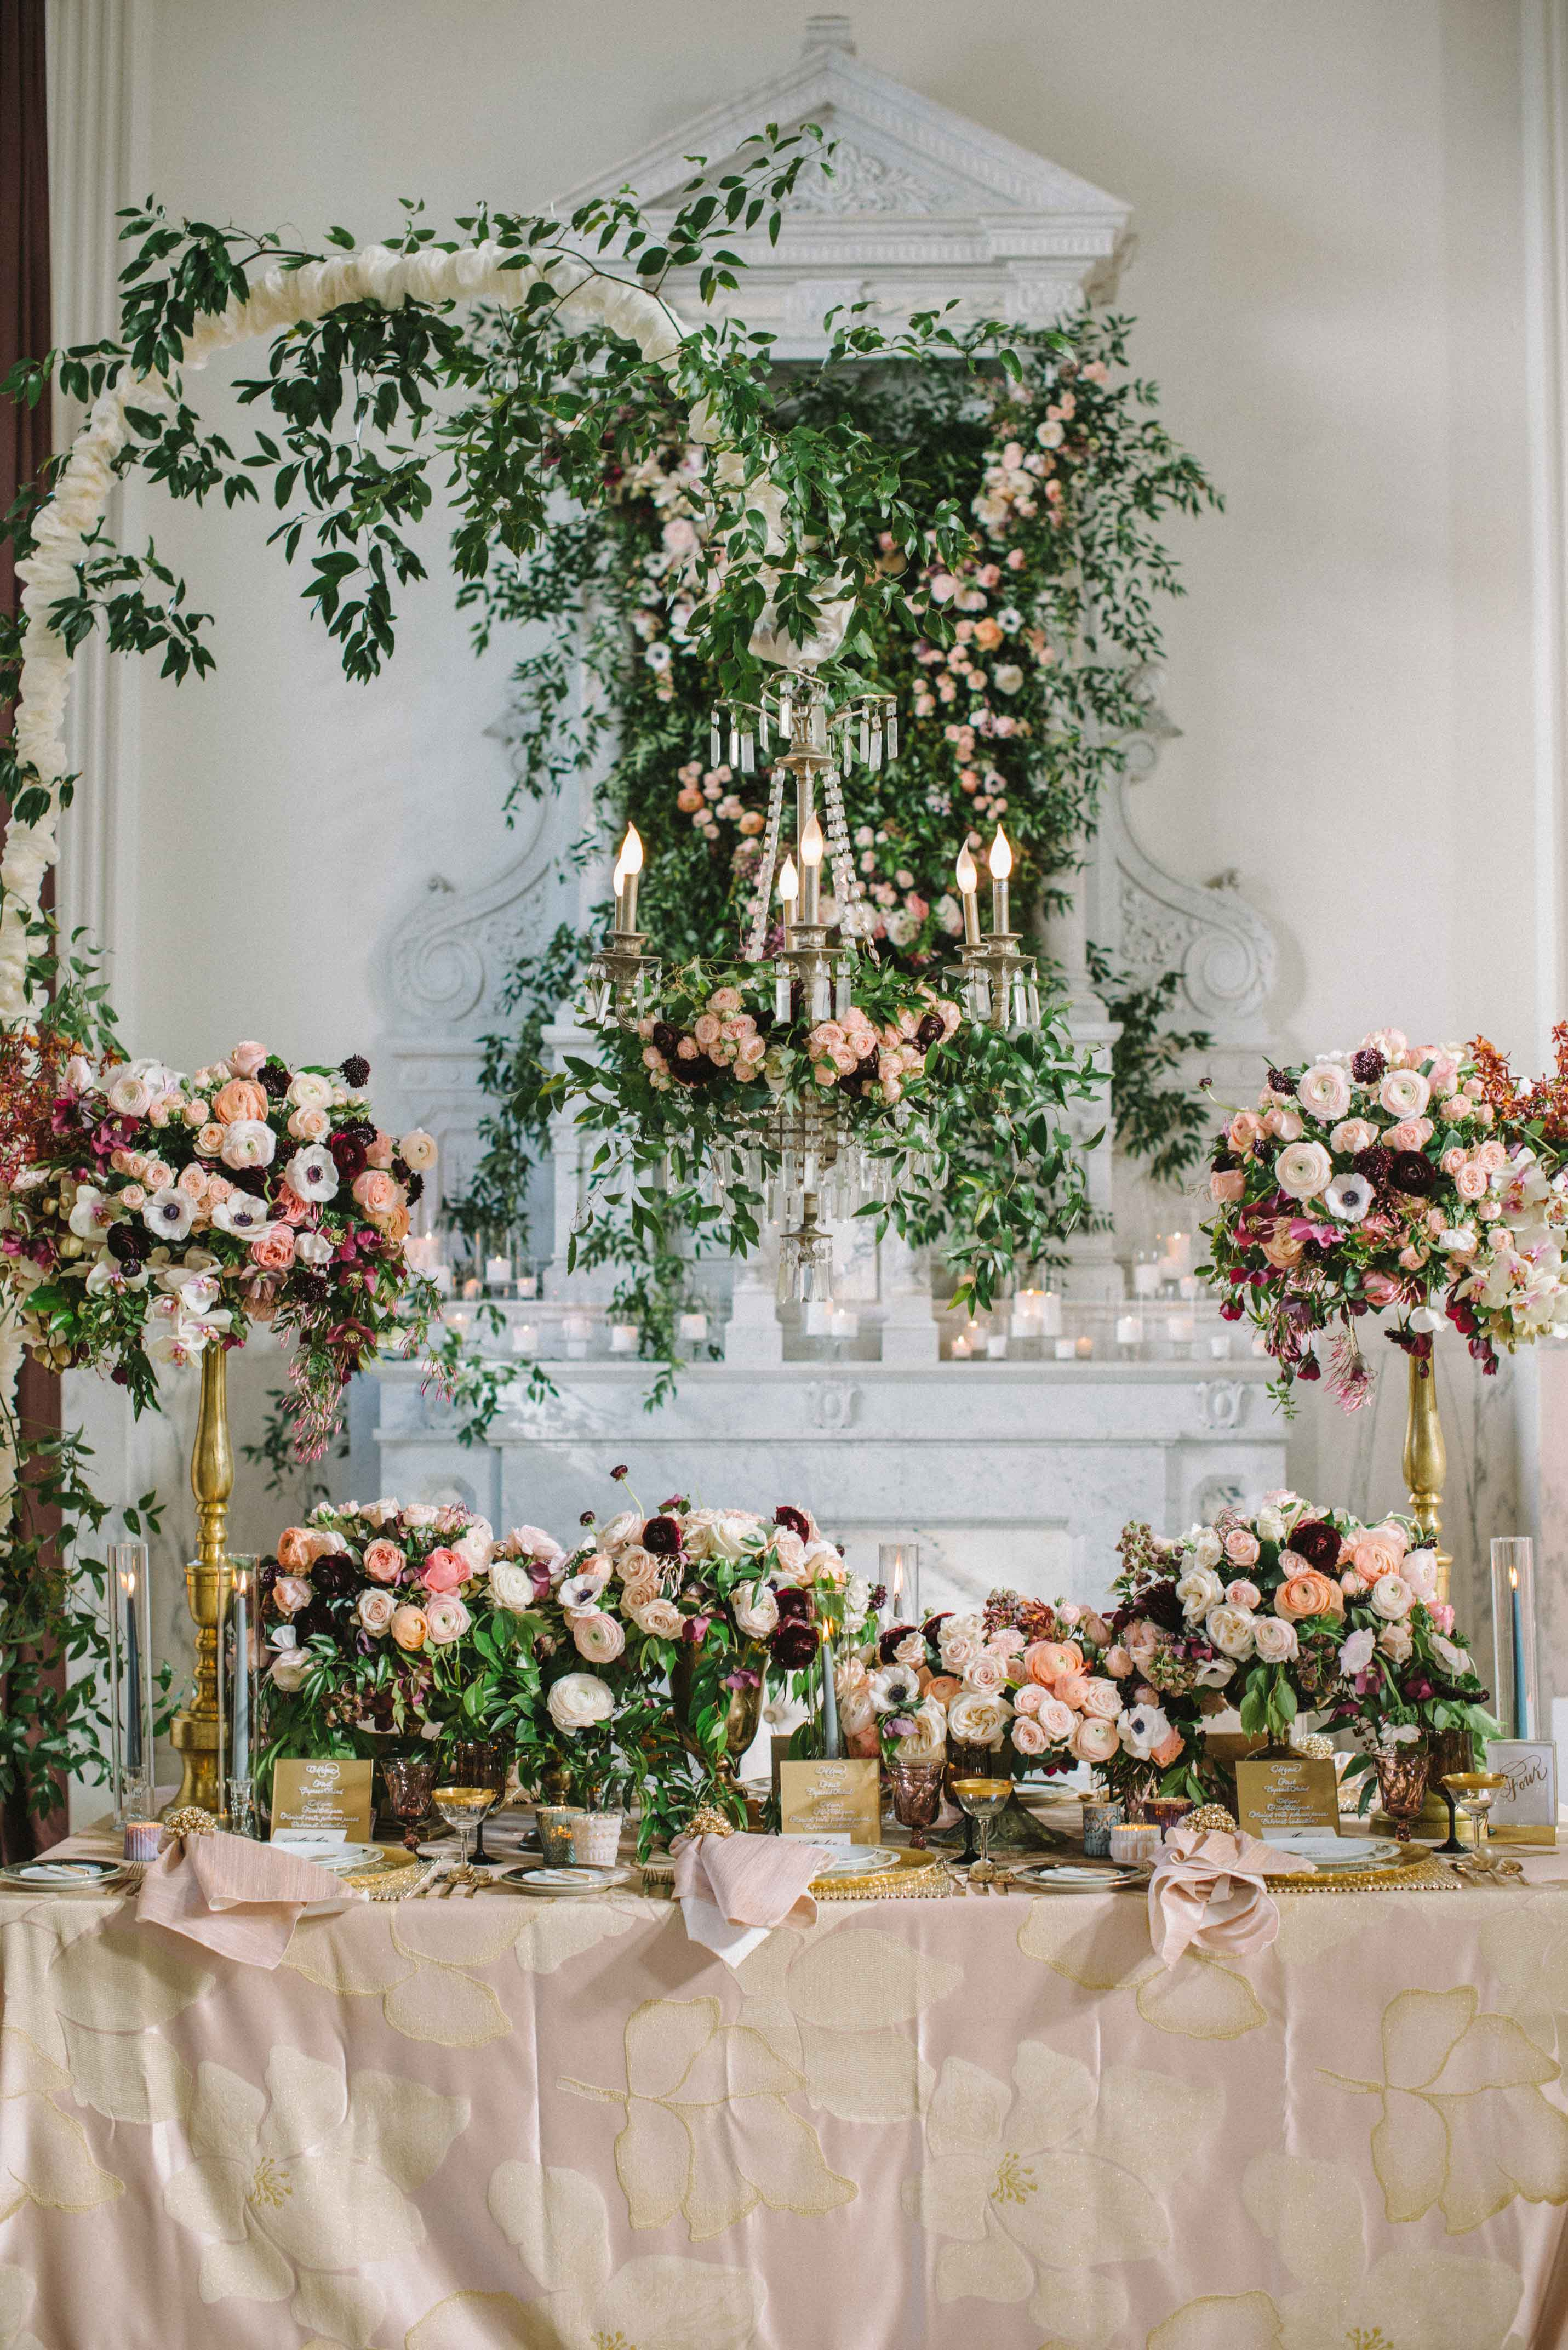 garden wedding ideas flower print linens at wedding reception table flower centerpiece floral chandelier